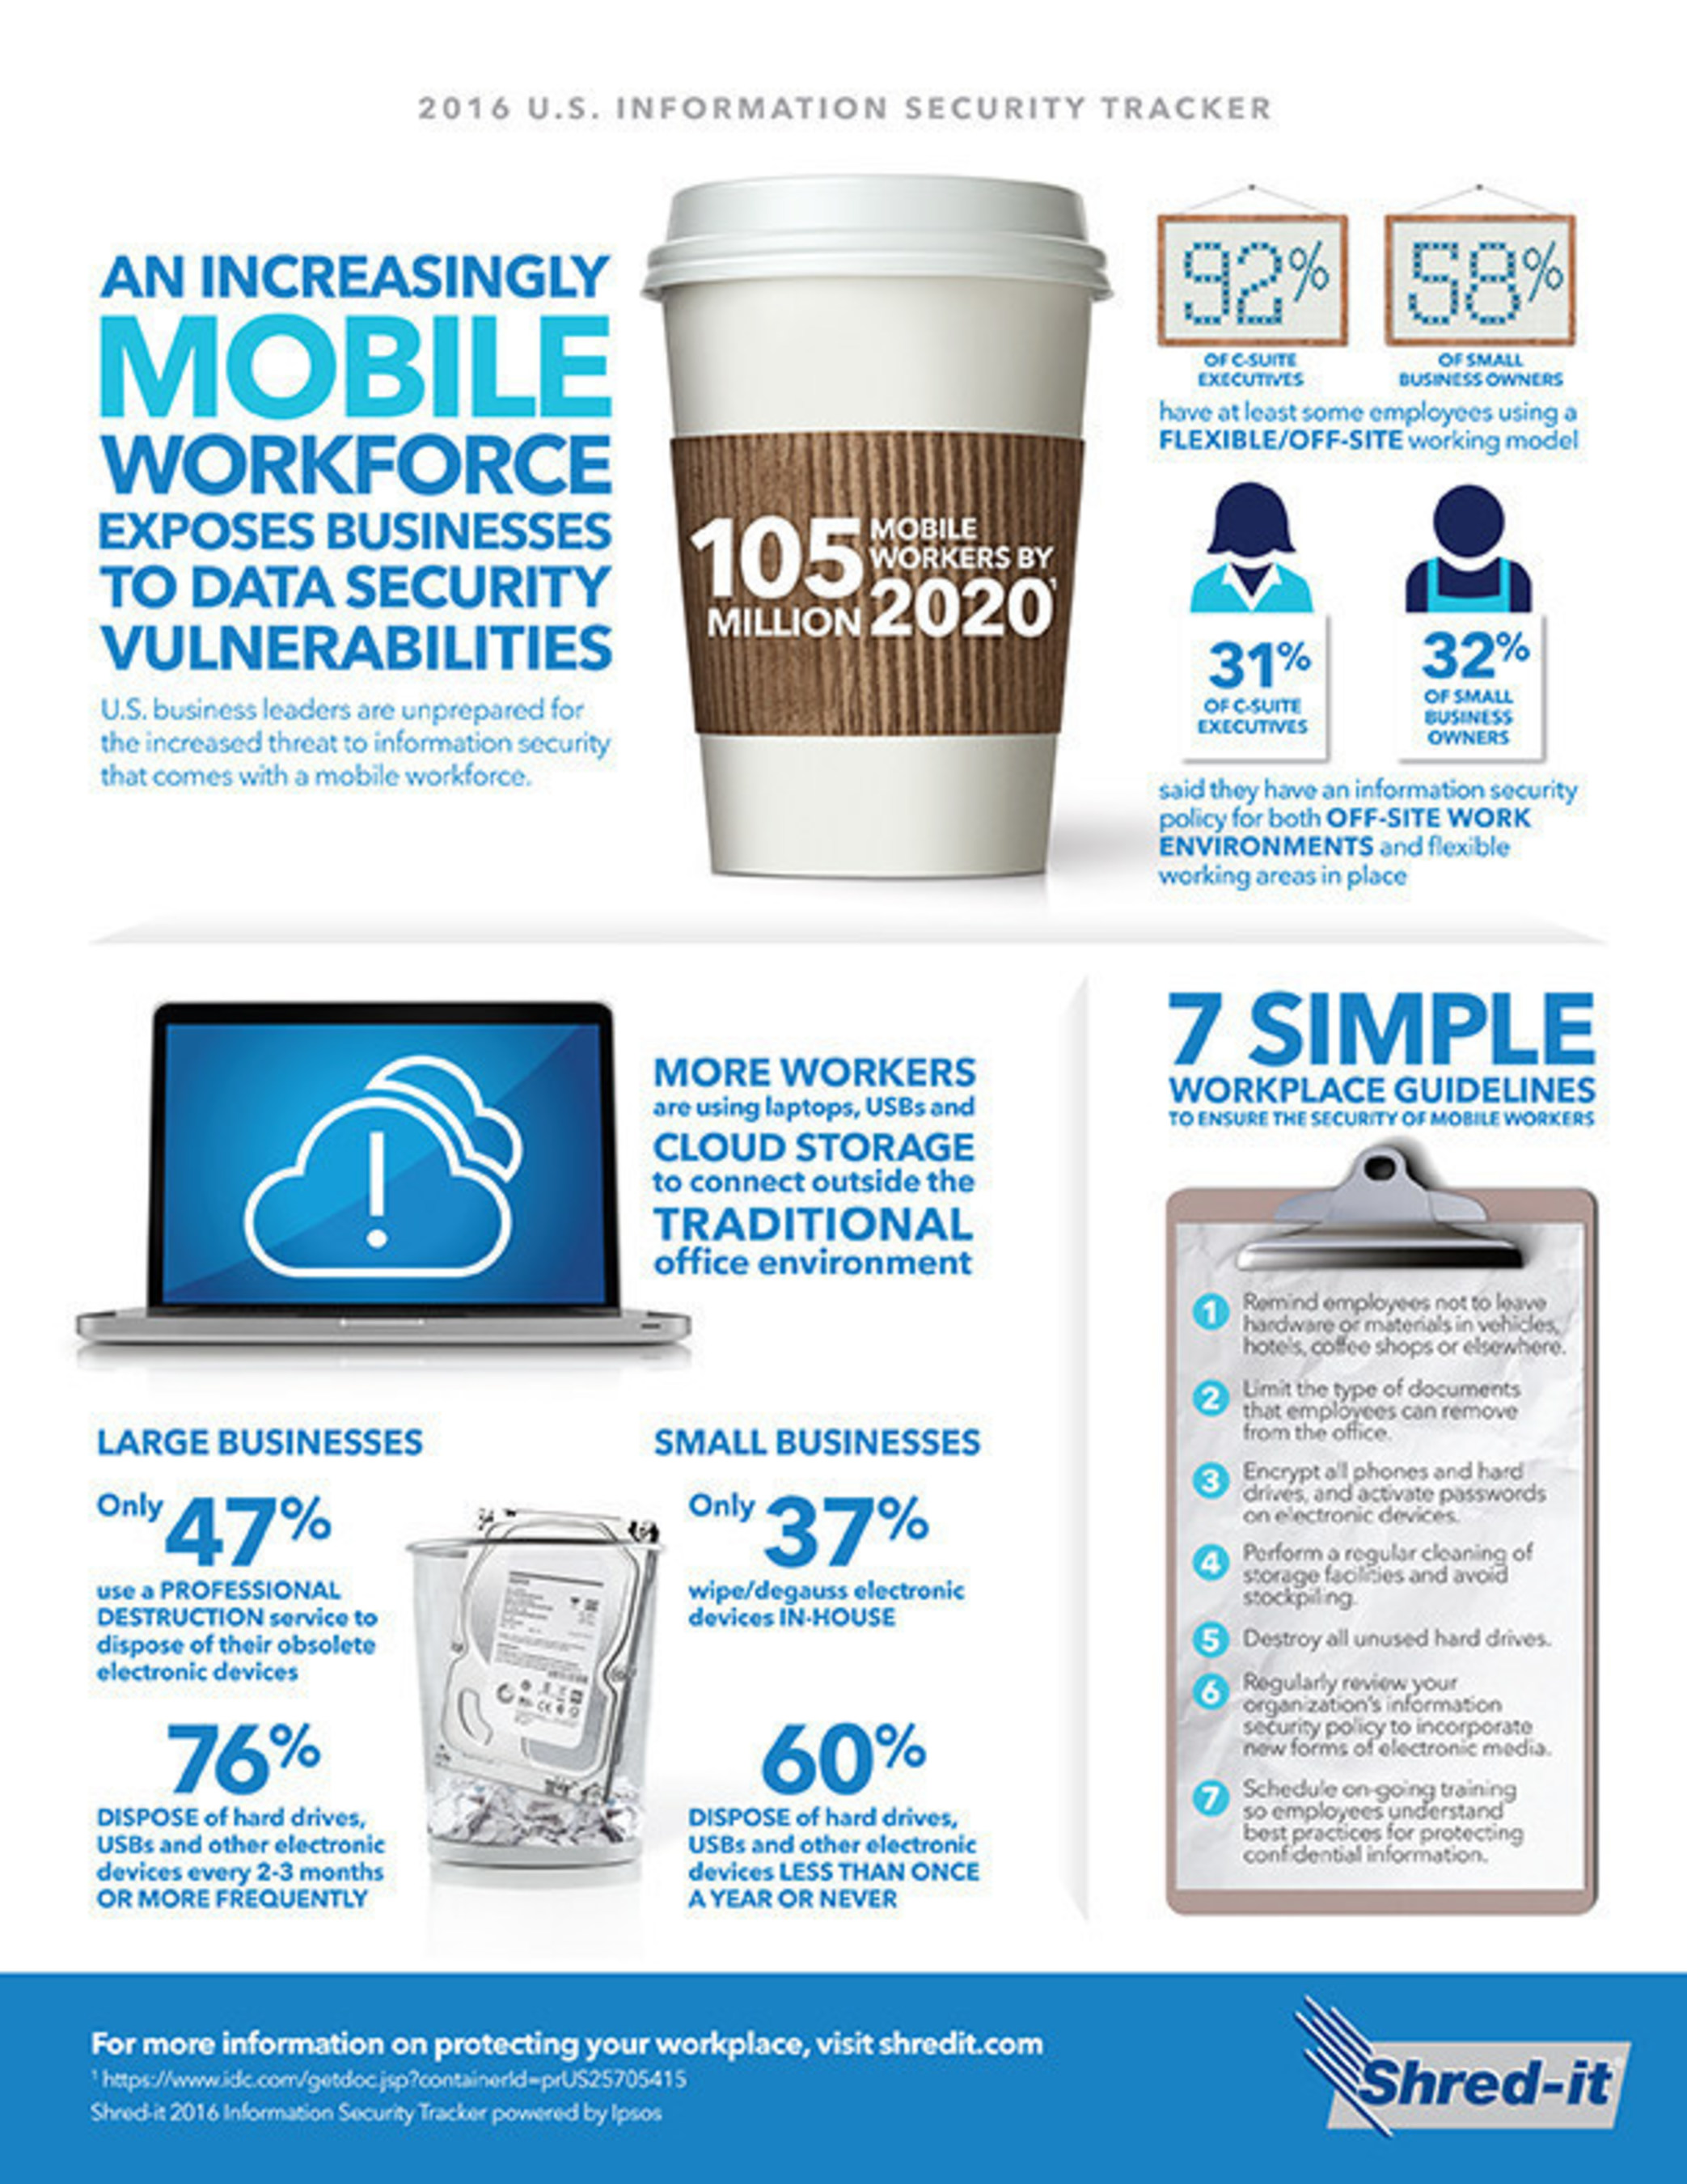 An Increasingly Mobile Workforce Exposes US Businesses to Data Security Vulnerabilities